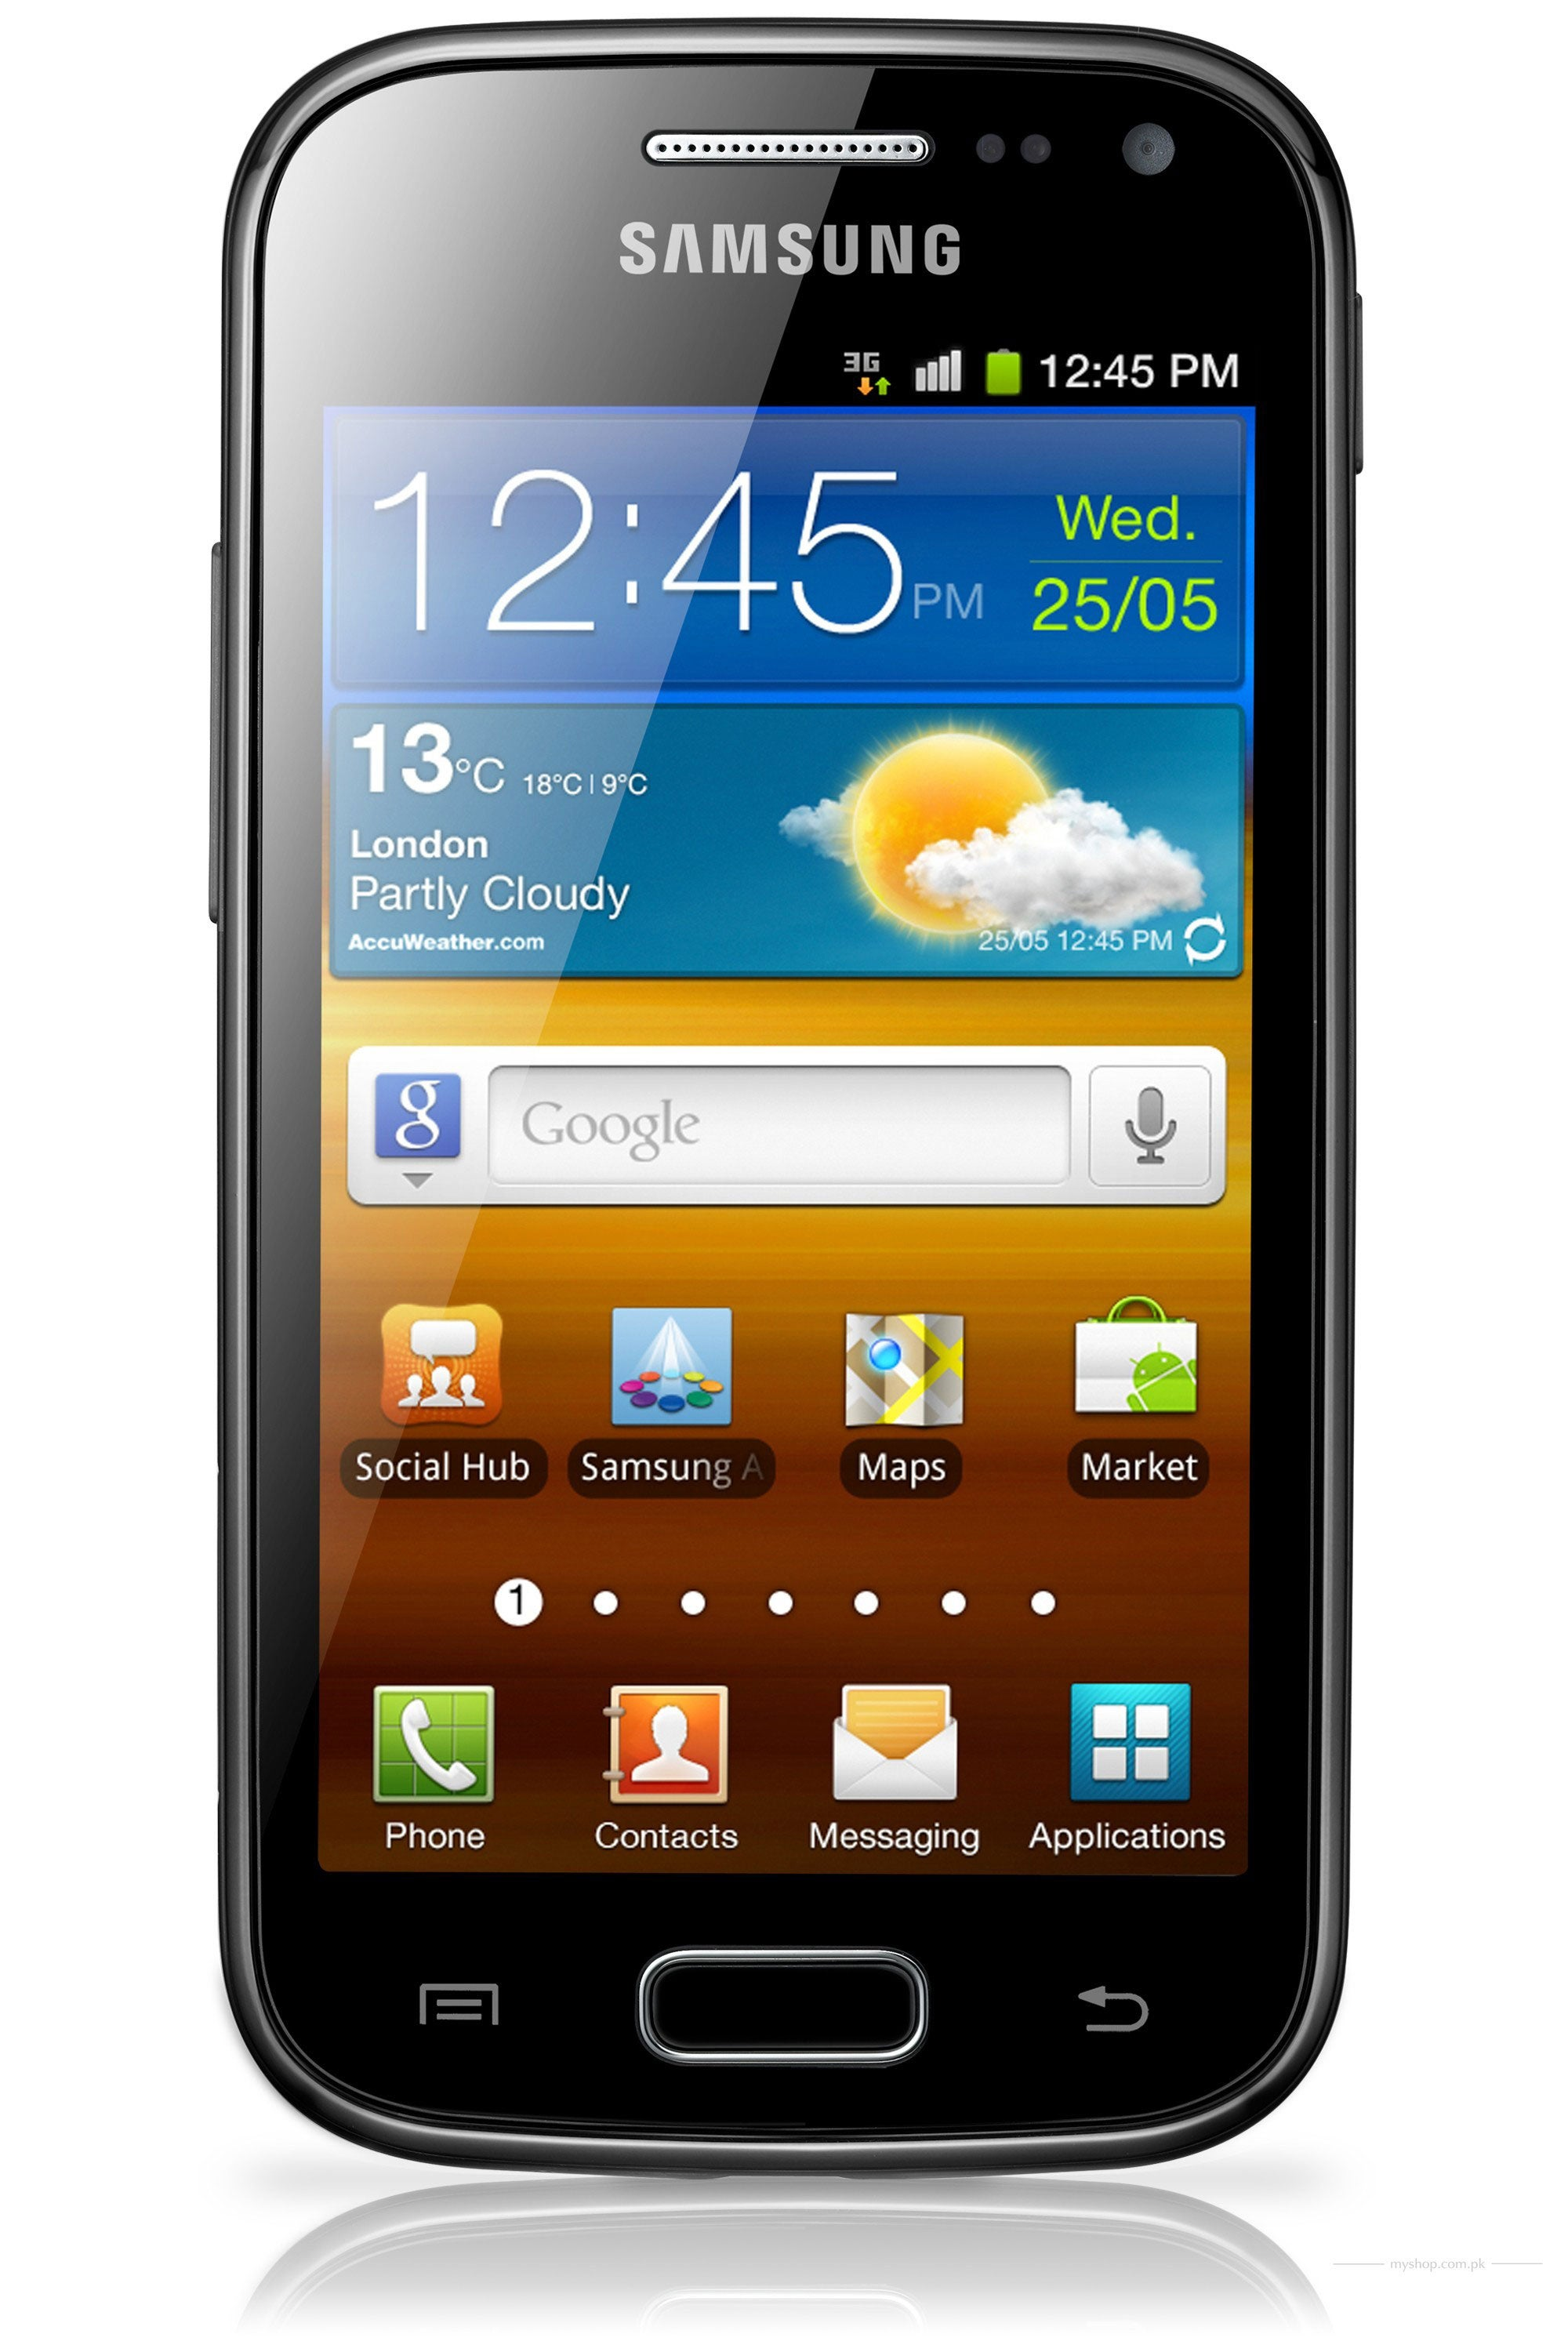 Samsung Galaxy Ace 2 I8160 GSM Unlocked Android Cell Phone